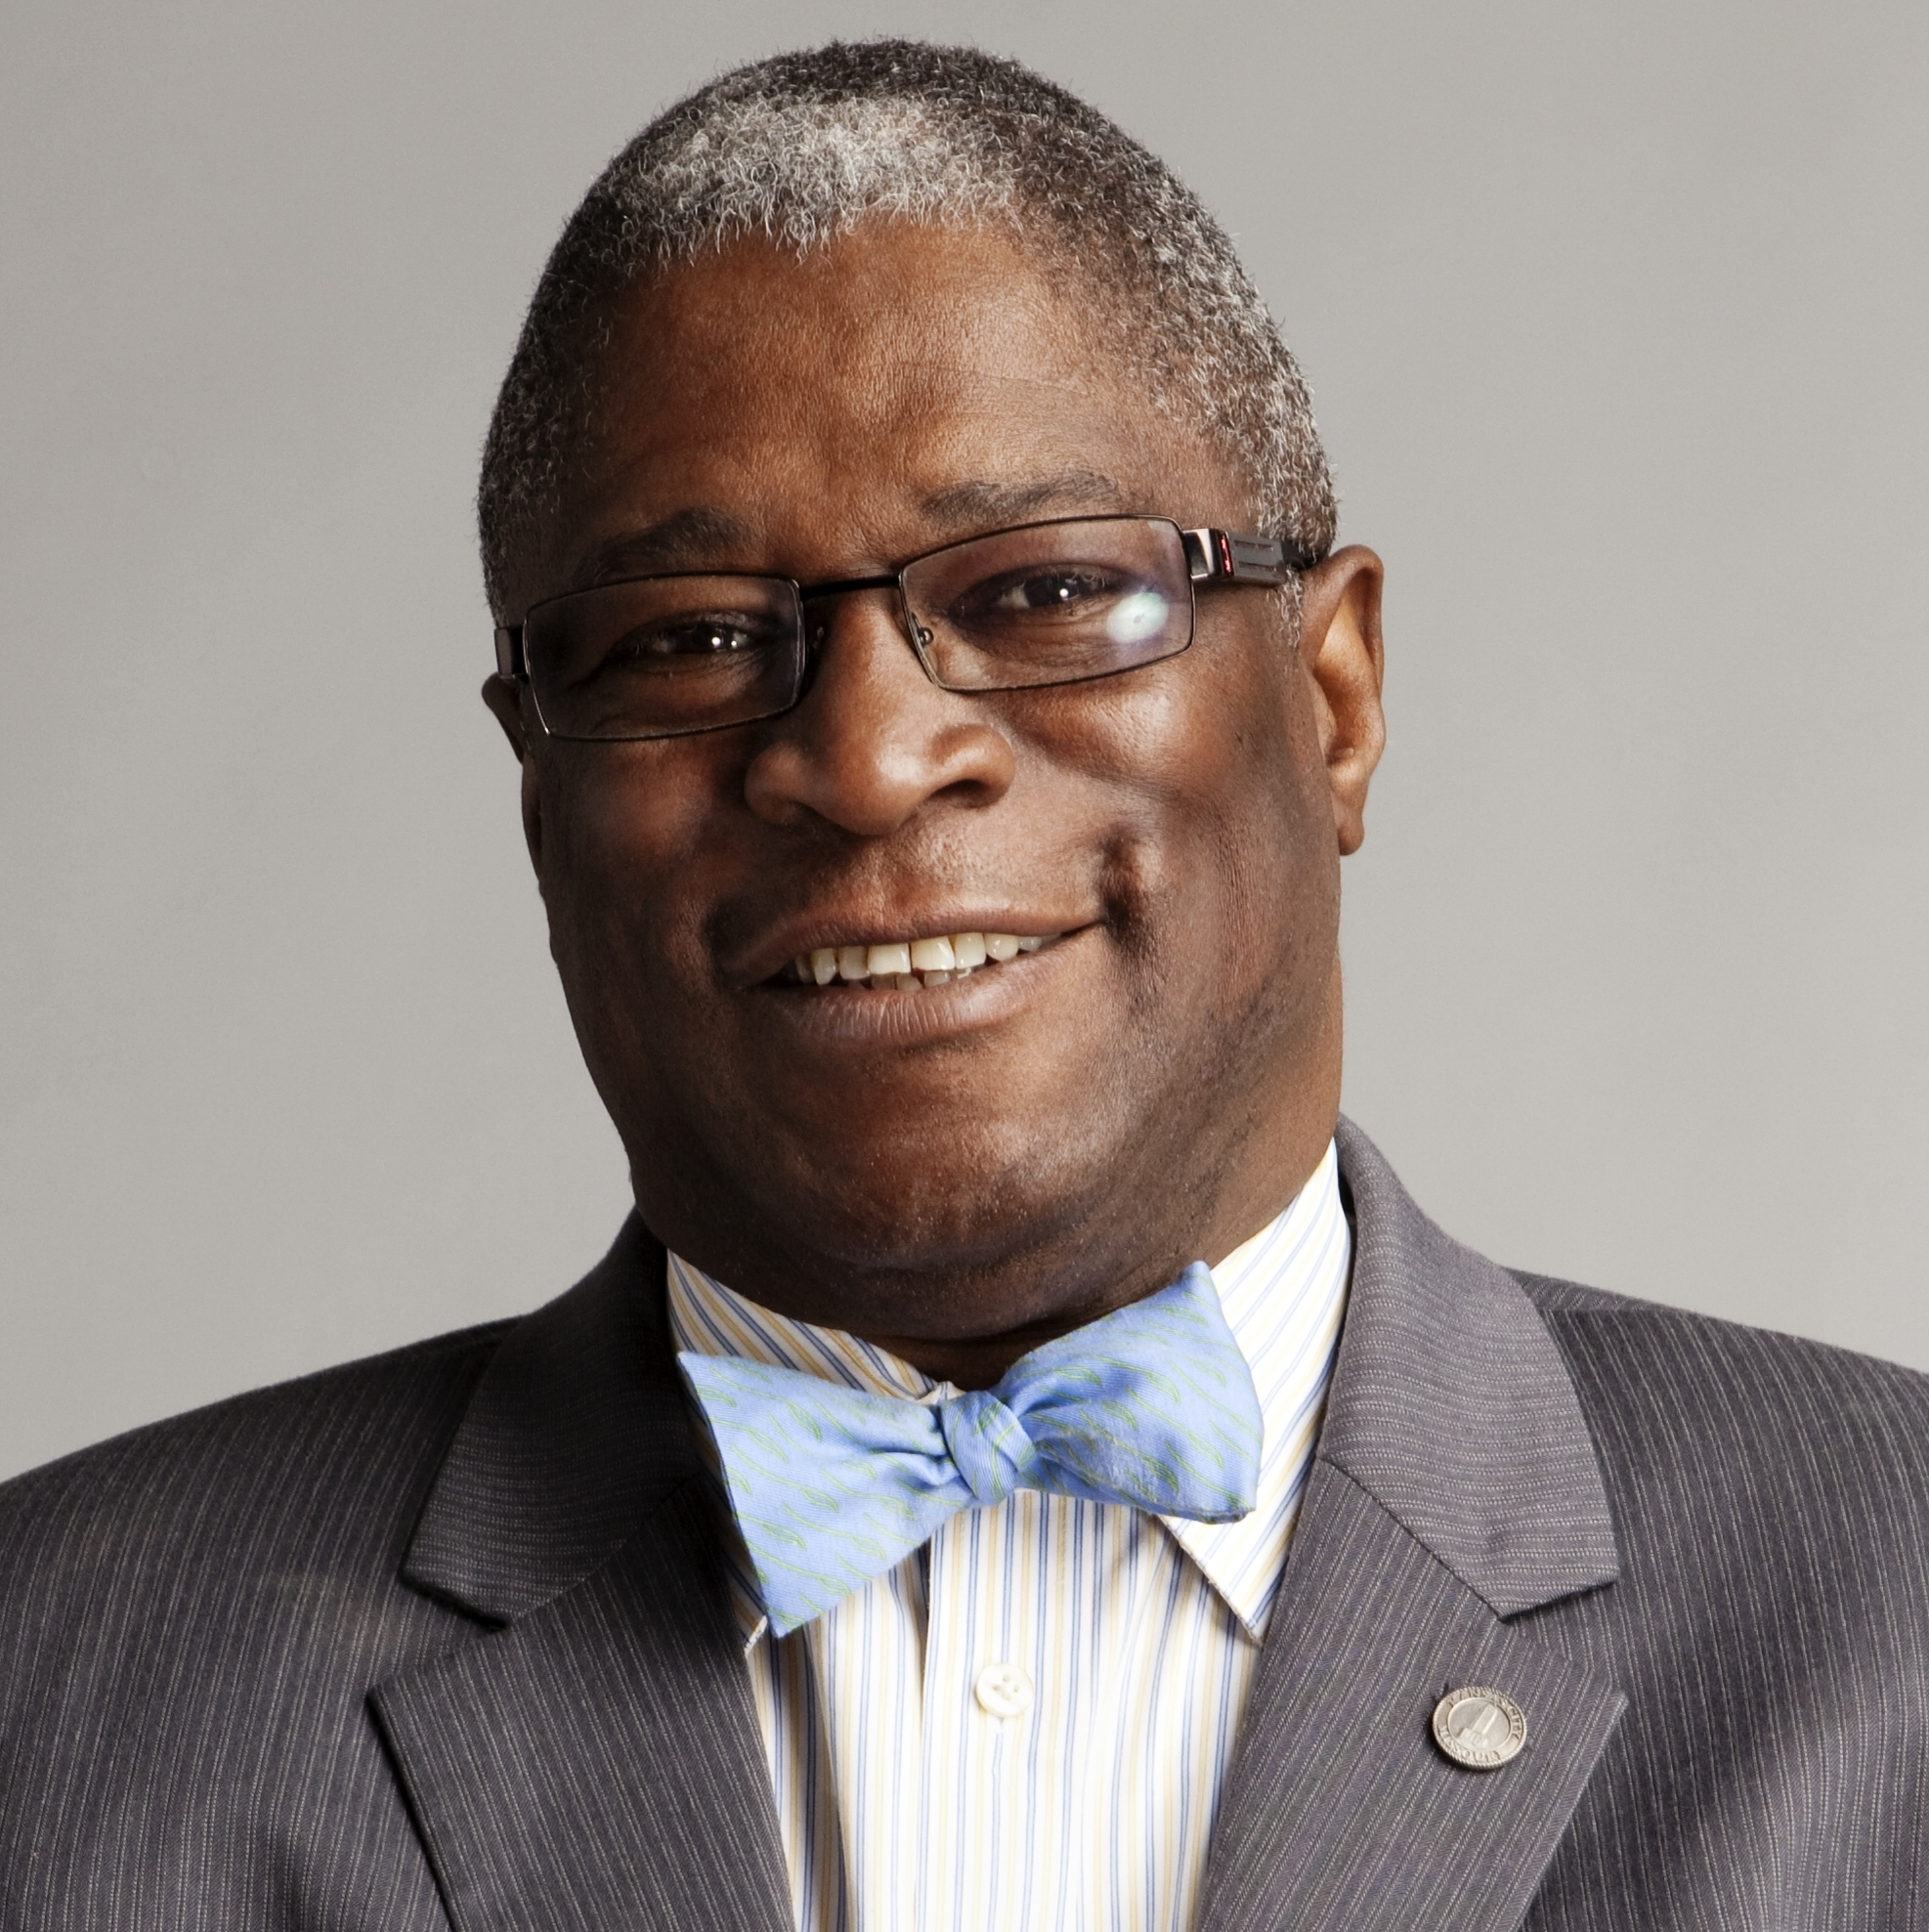 Mayor Sly James to Speak at YVC Summit